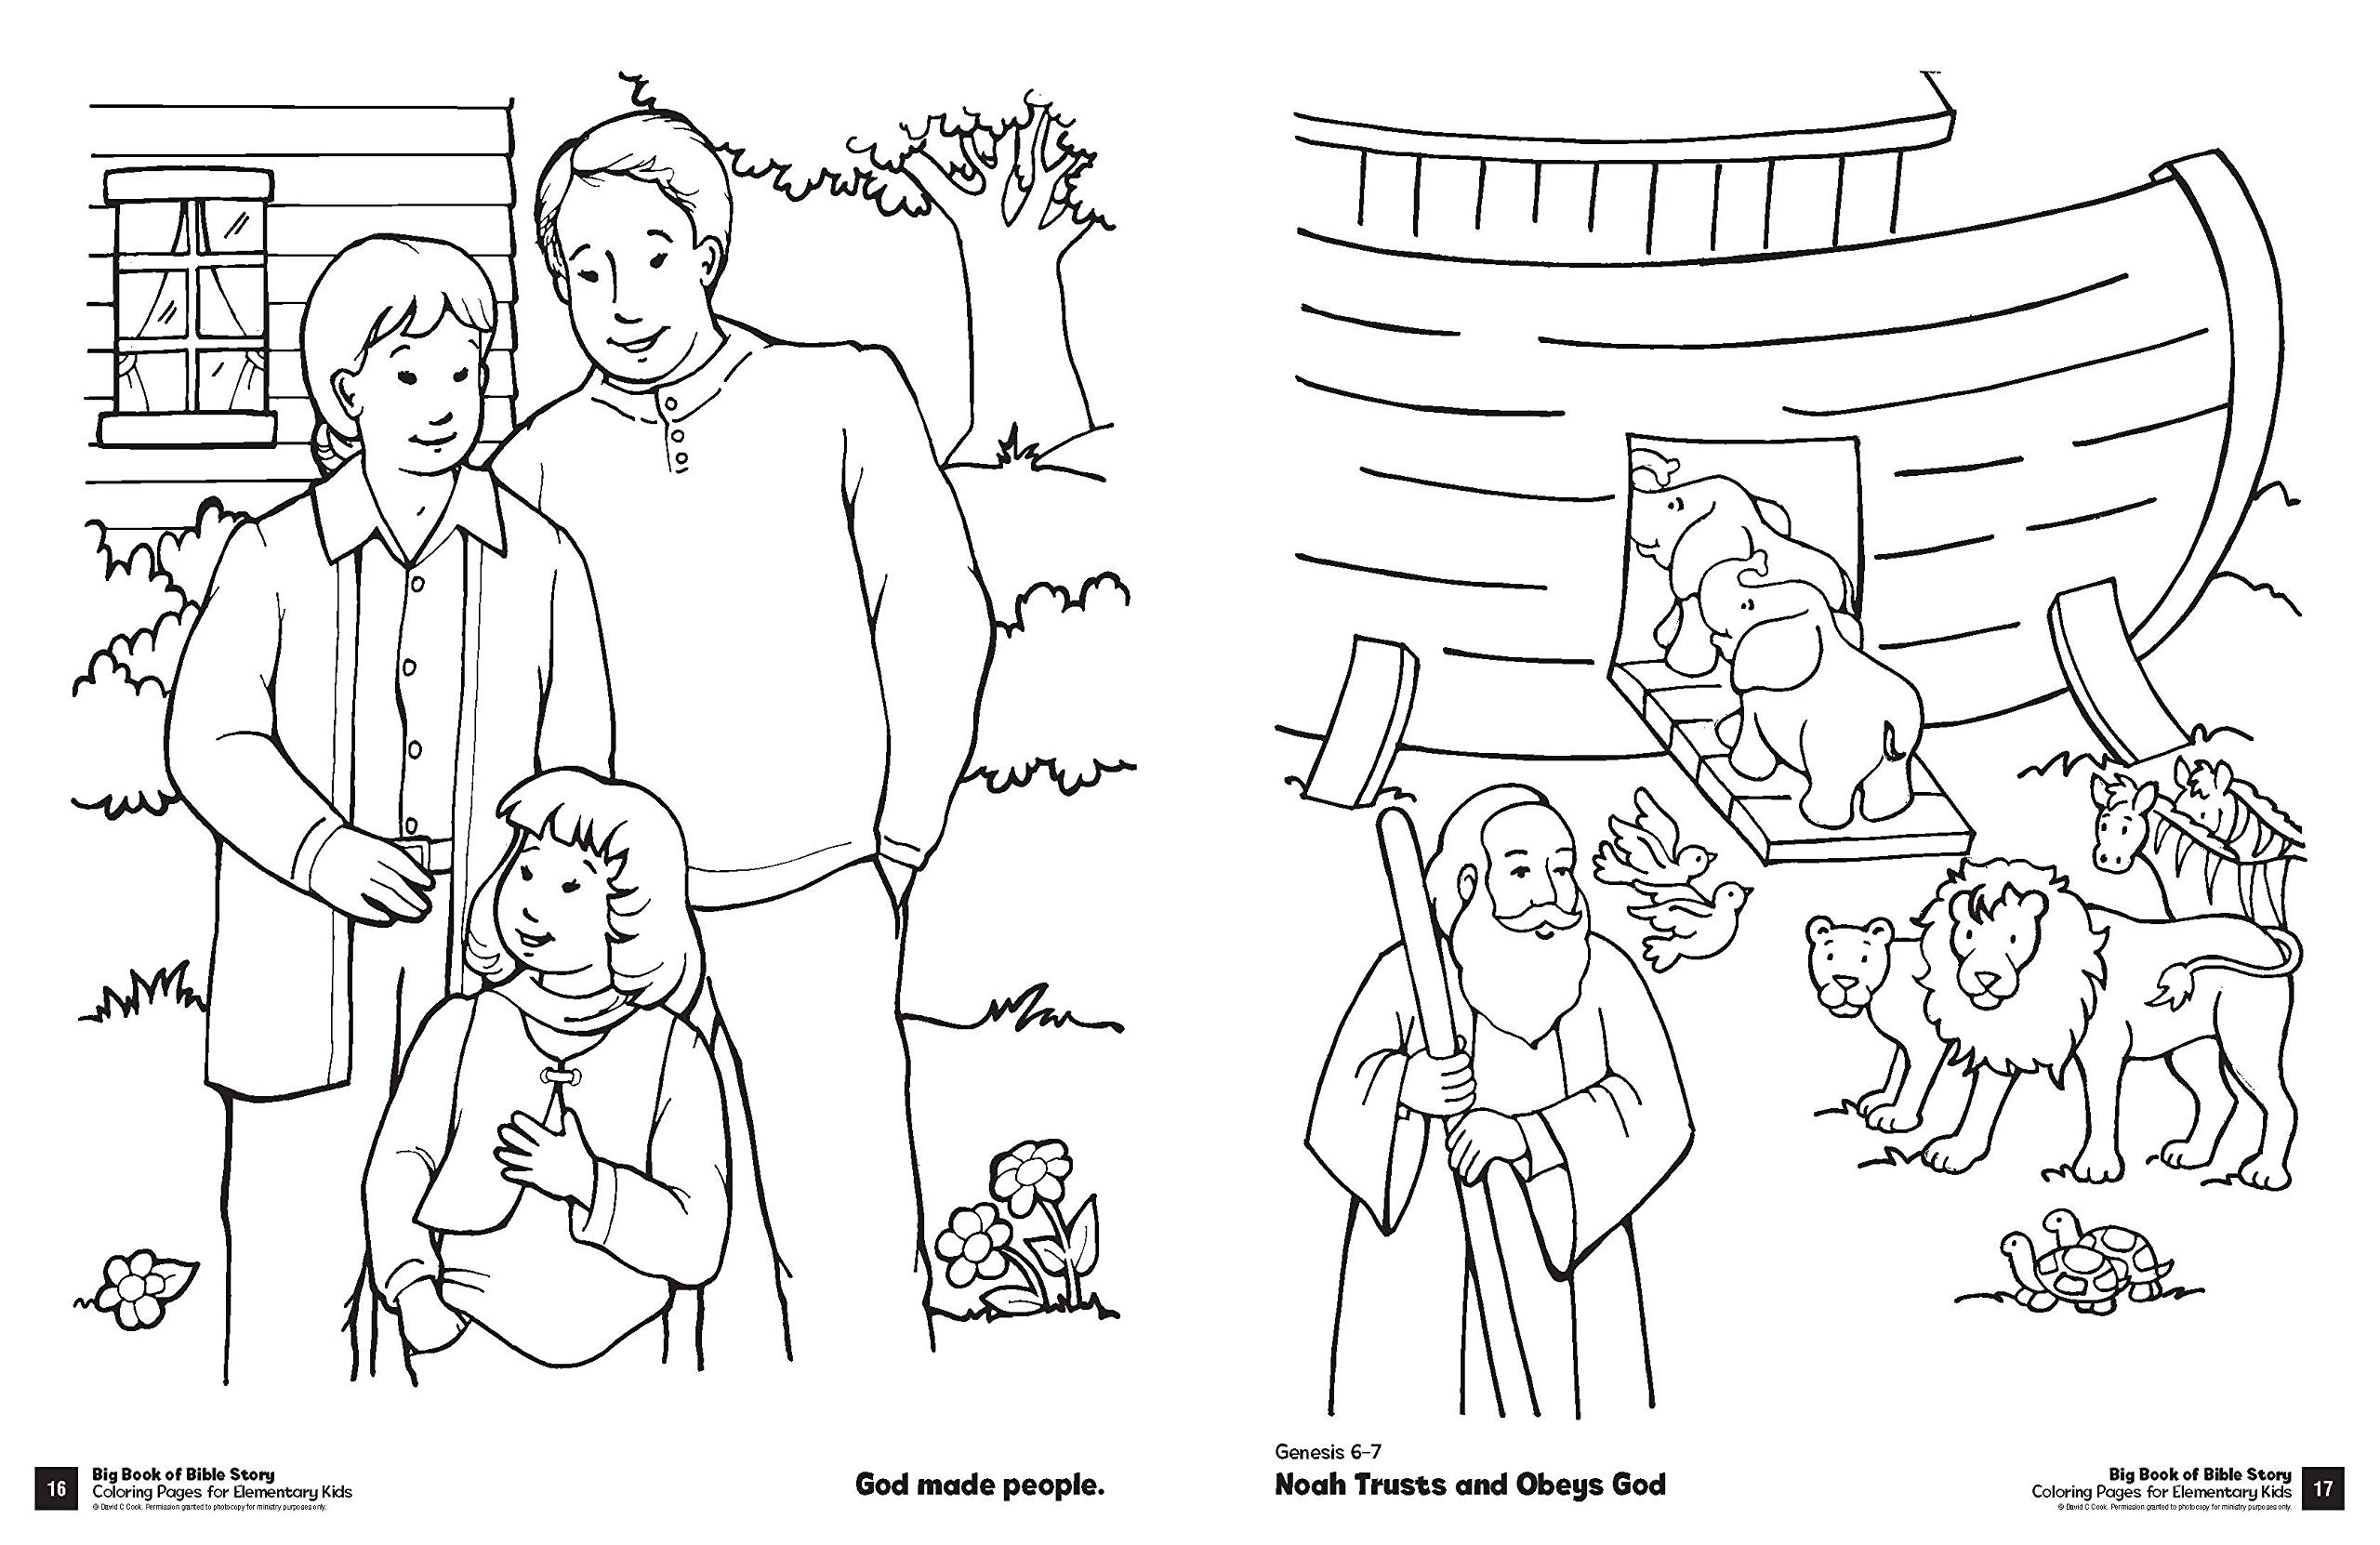 - Big Book Of Bible Story Coloring Pages For Elementary Kids (Big